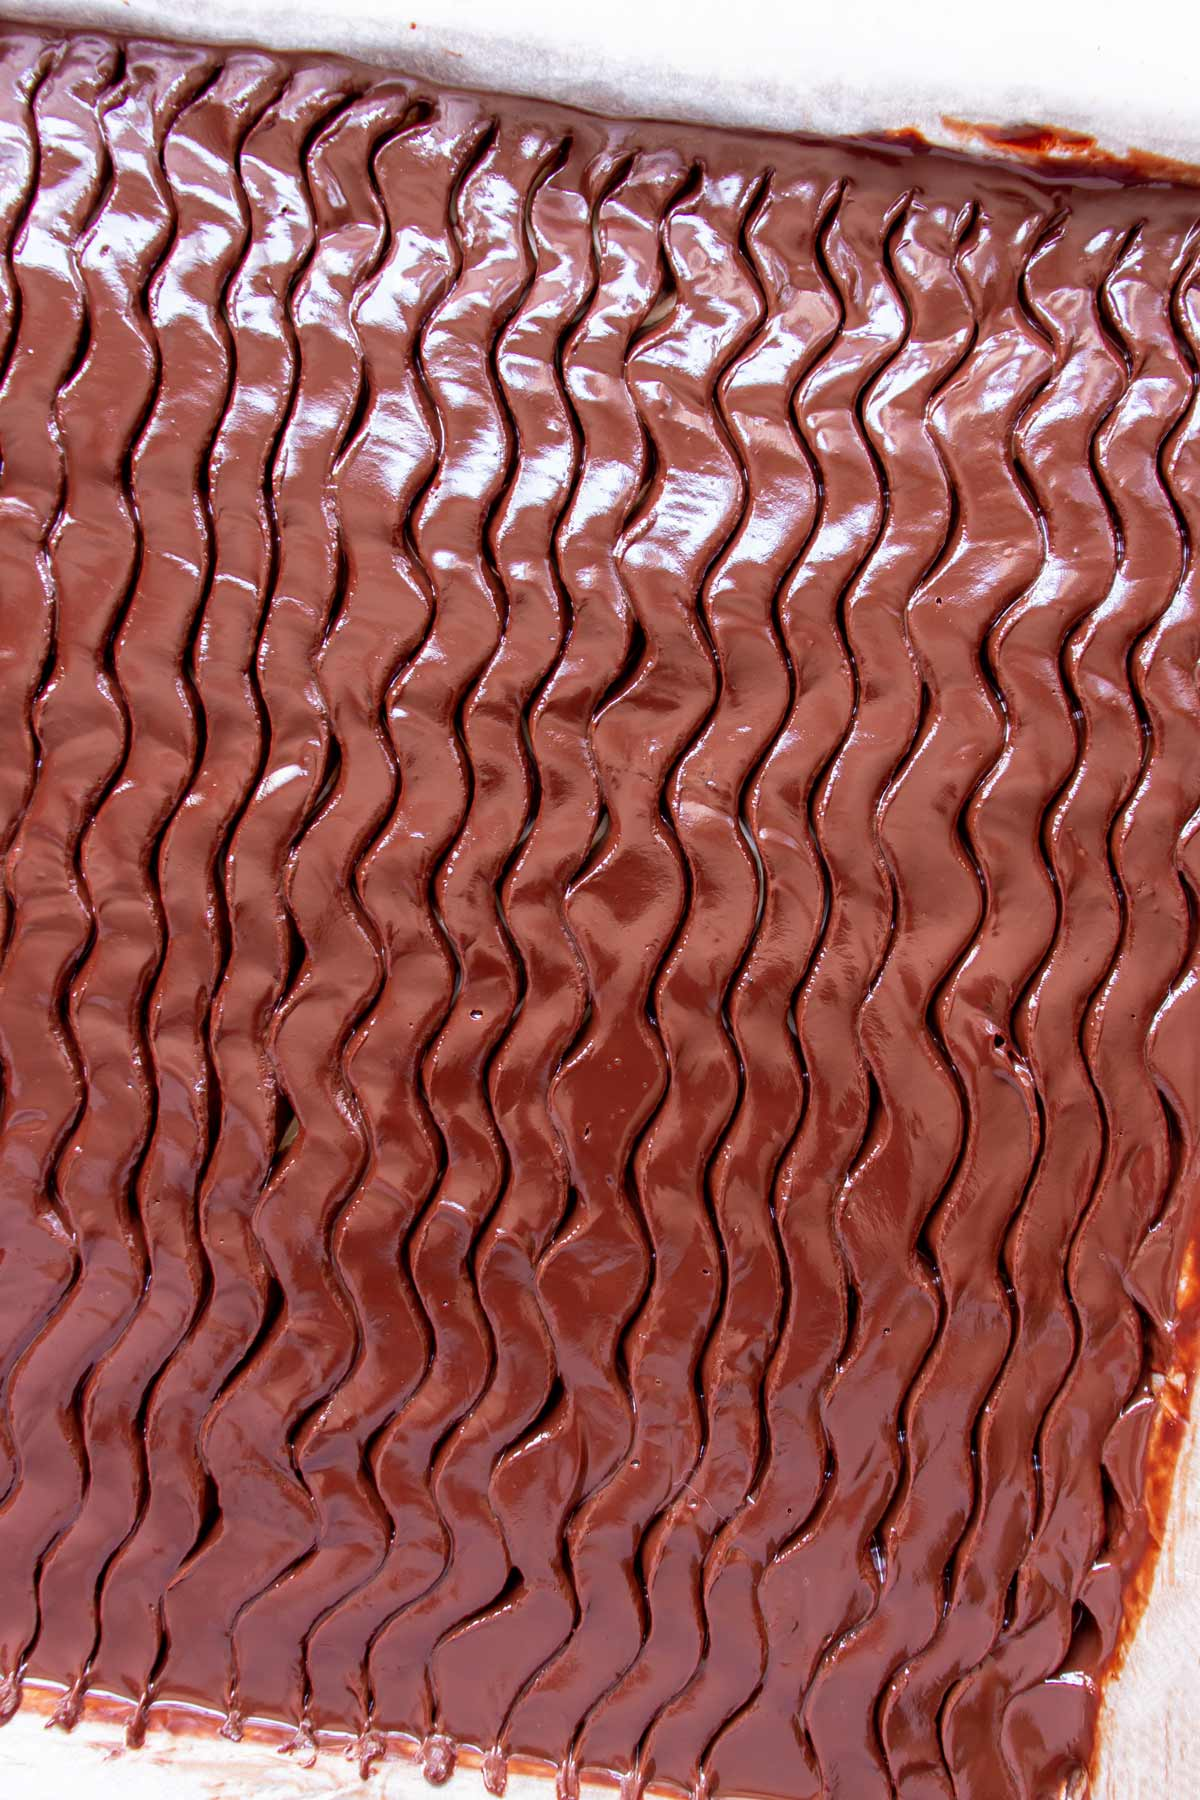 Closeup of a wavy pattern in chocolate ganache on top of a cake.